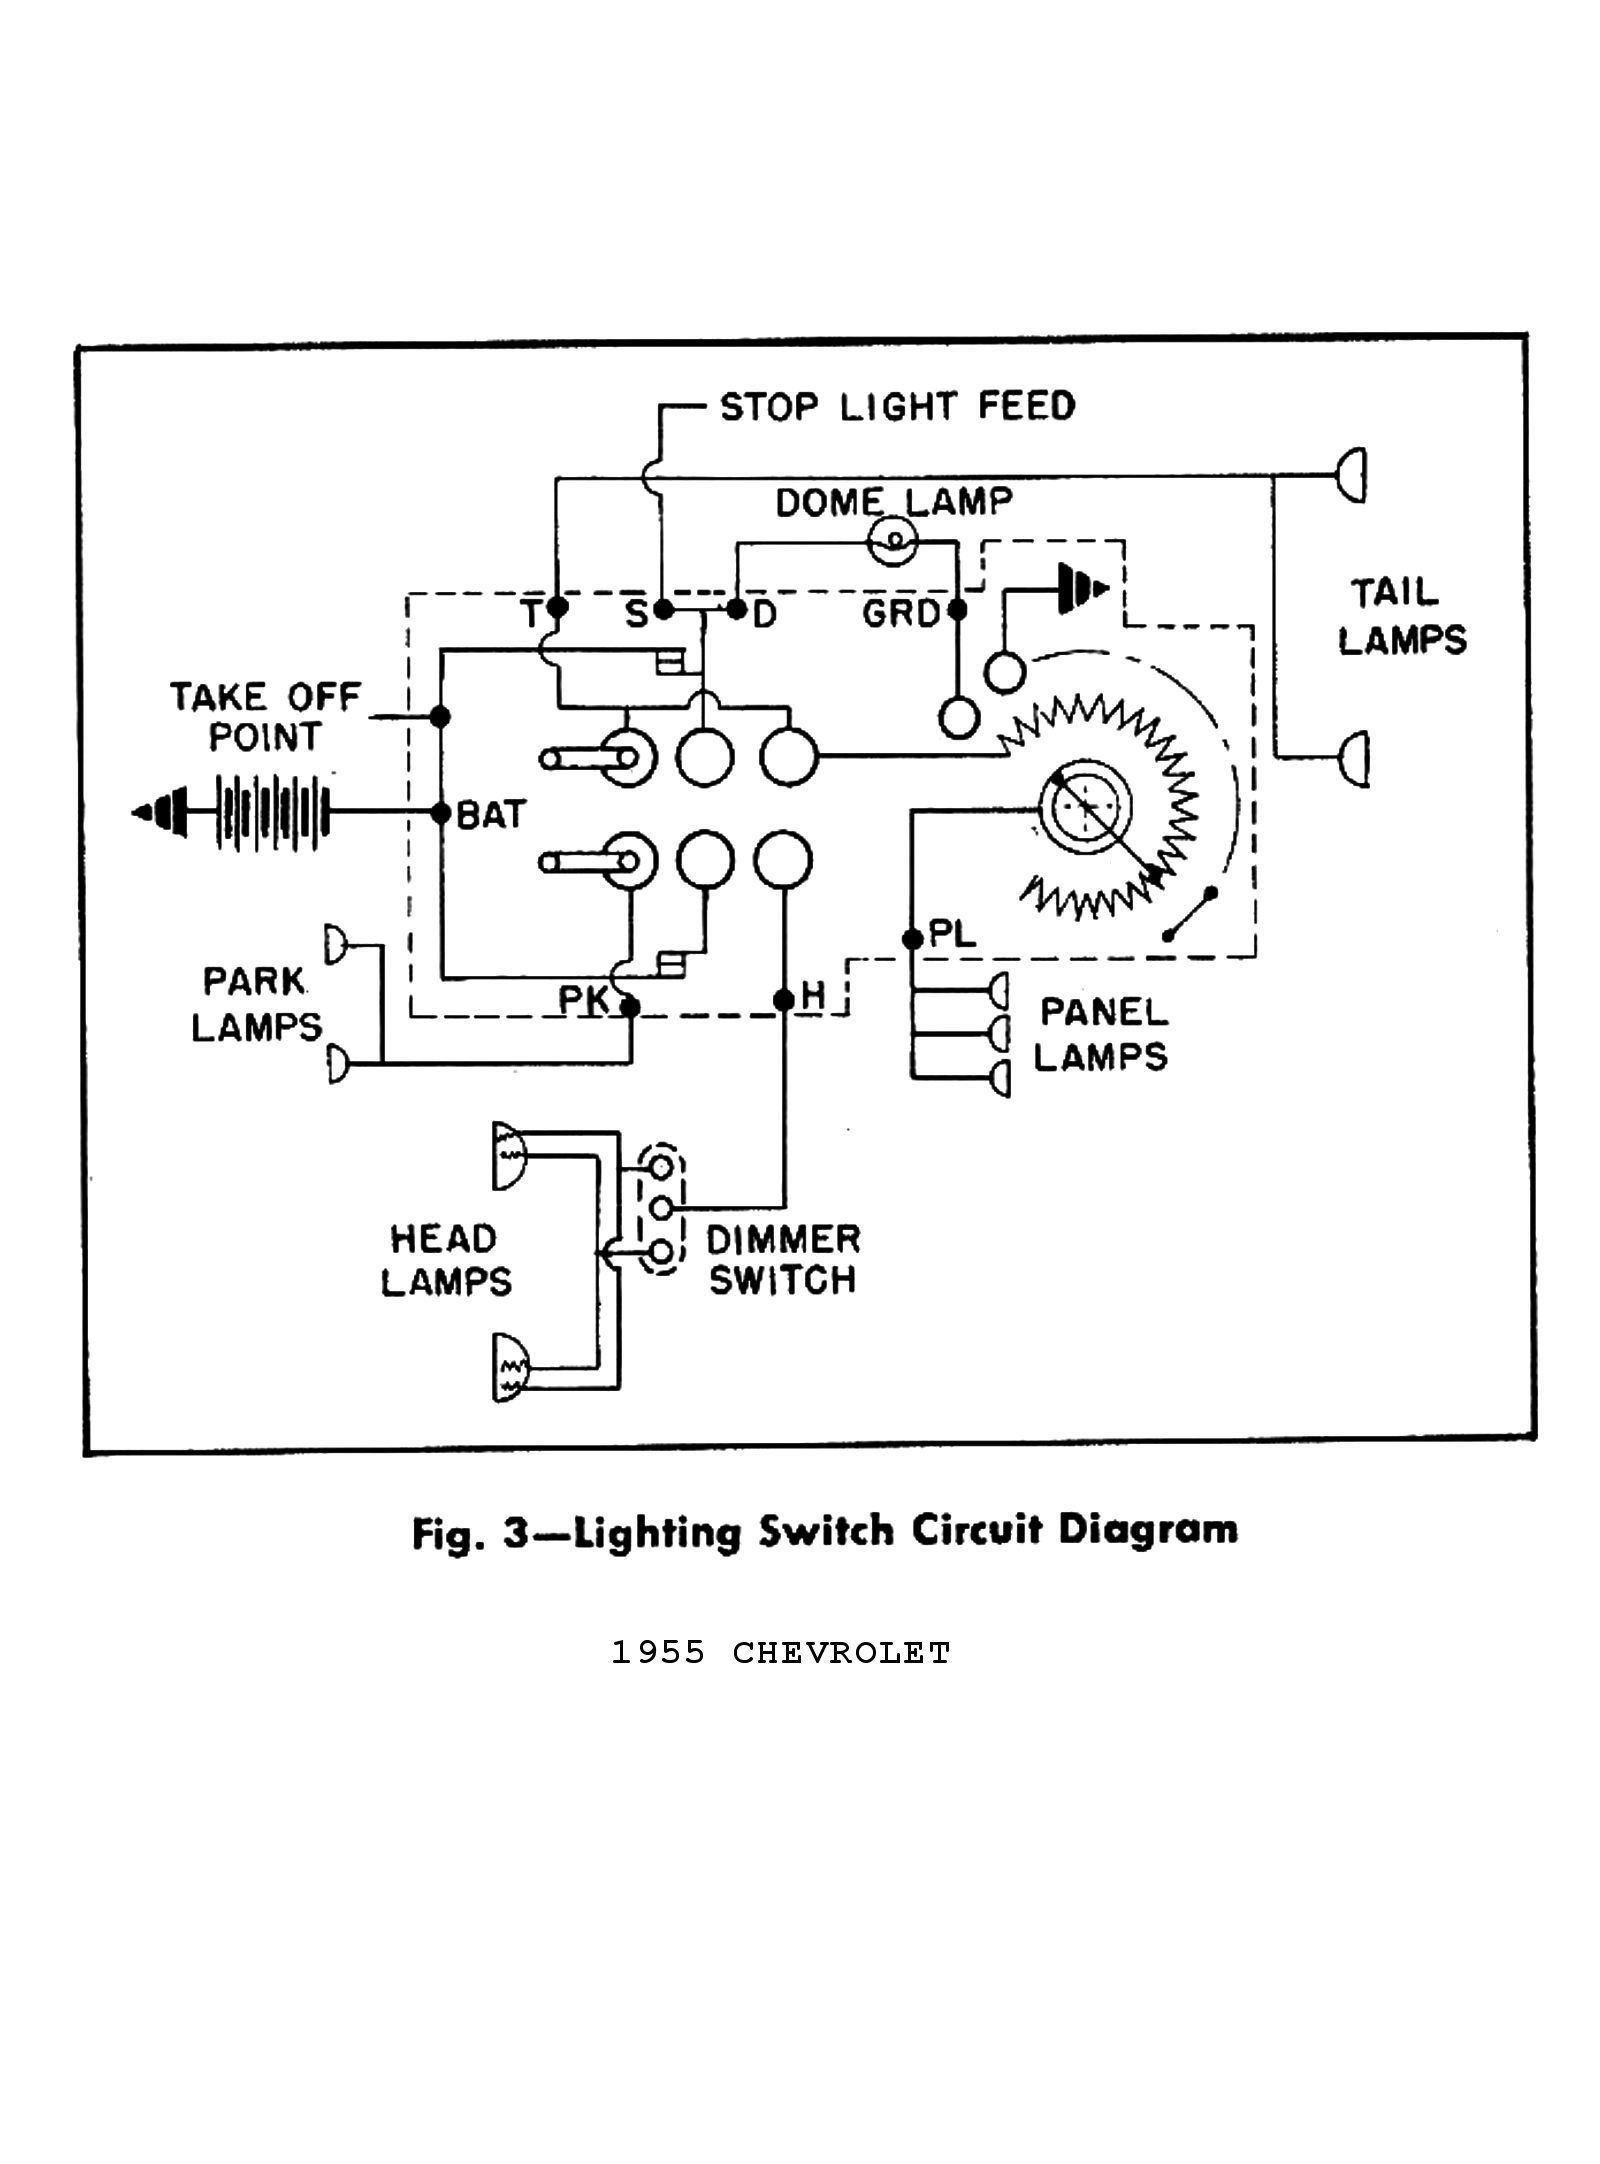 hight resolution of chevy ignition wiring diagram wiring diagram valueuniversal ignition switch wiring diagram inspirational 1955 chevy of 2002